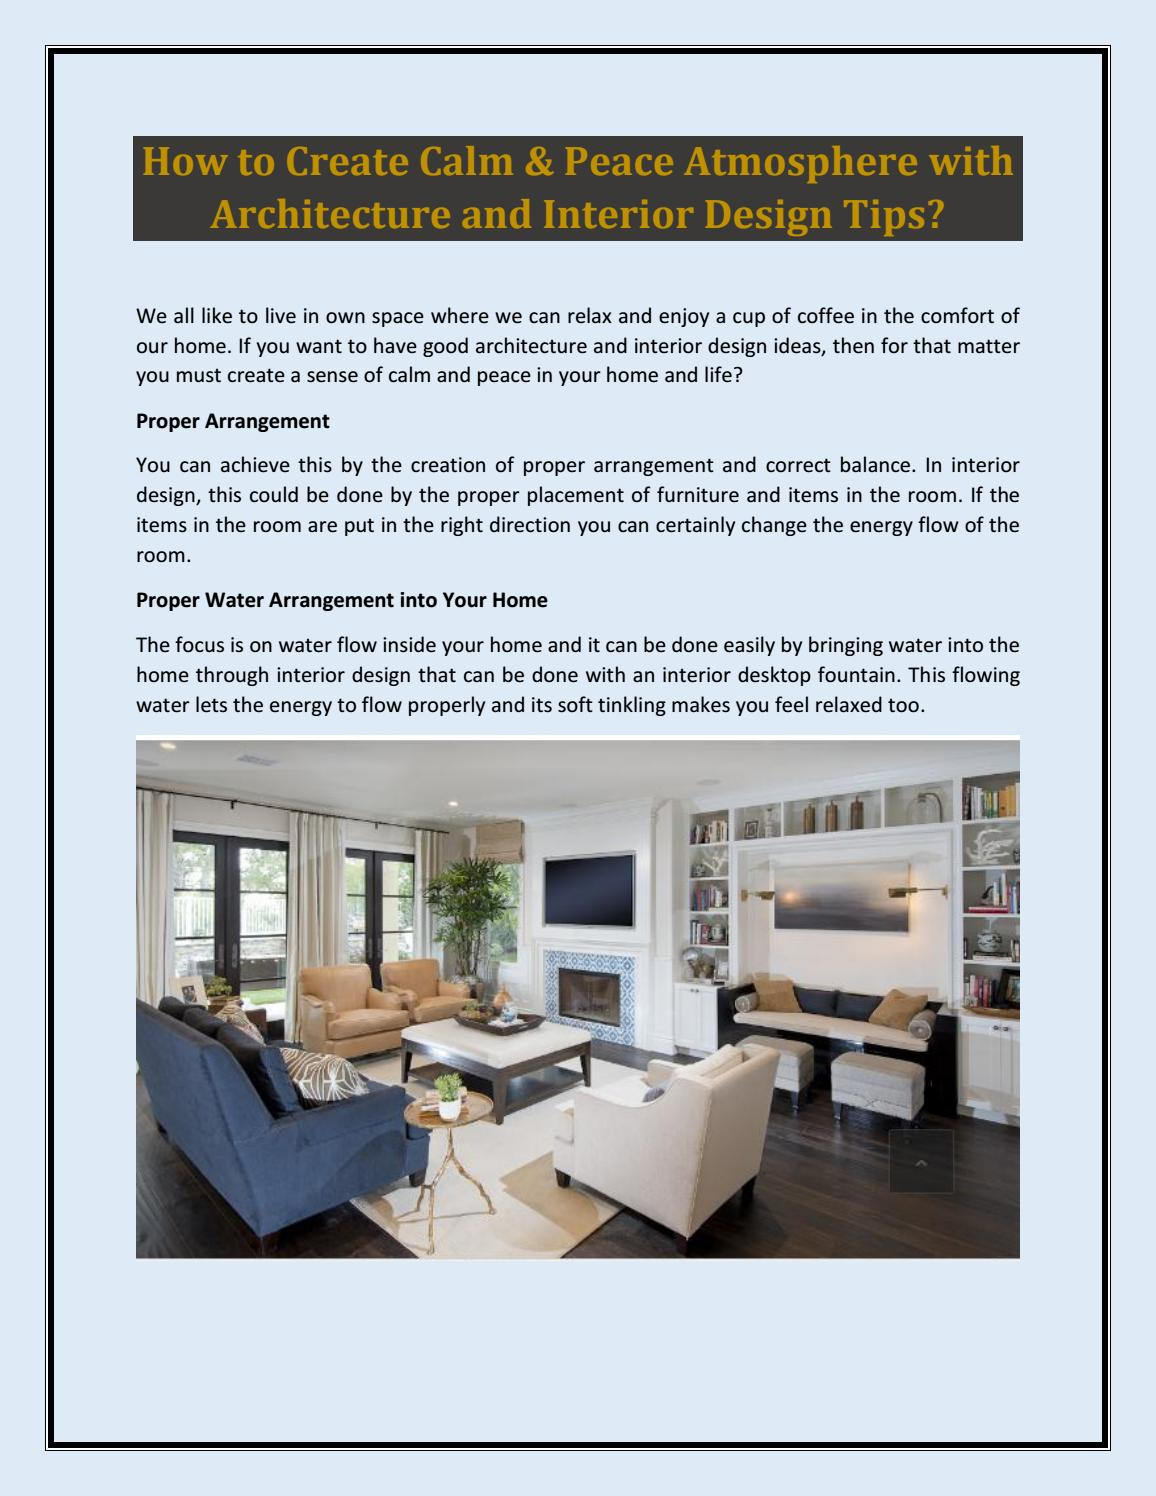 How to create calm peace atmosphere with architecture and